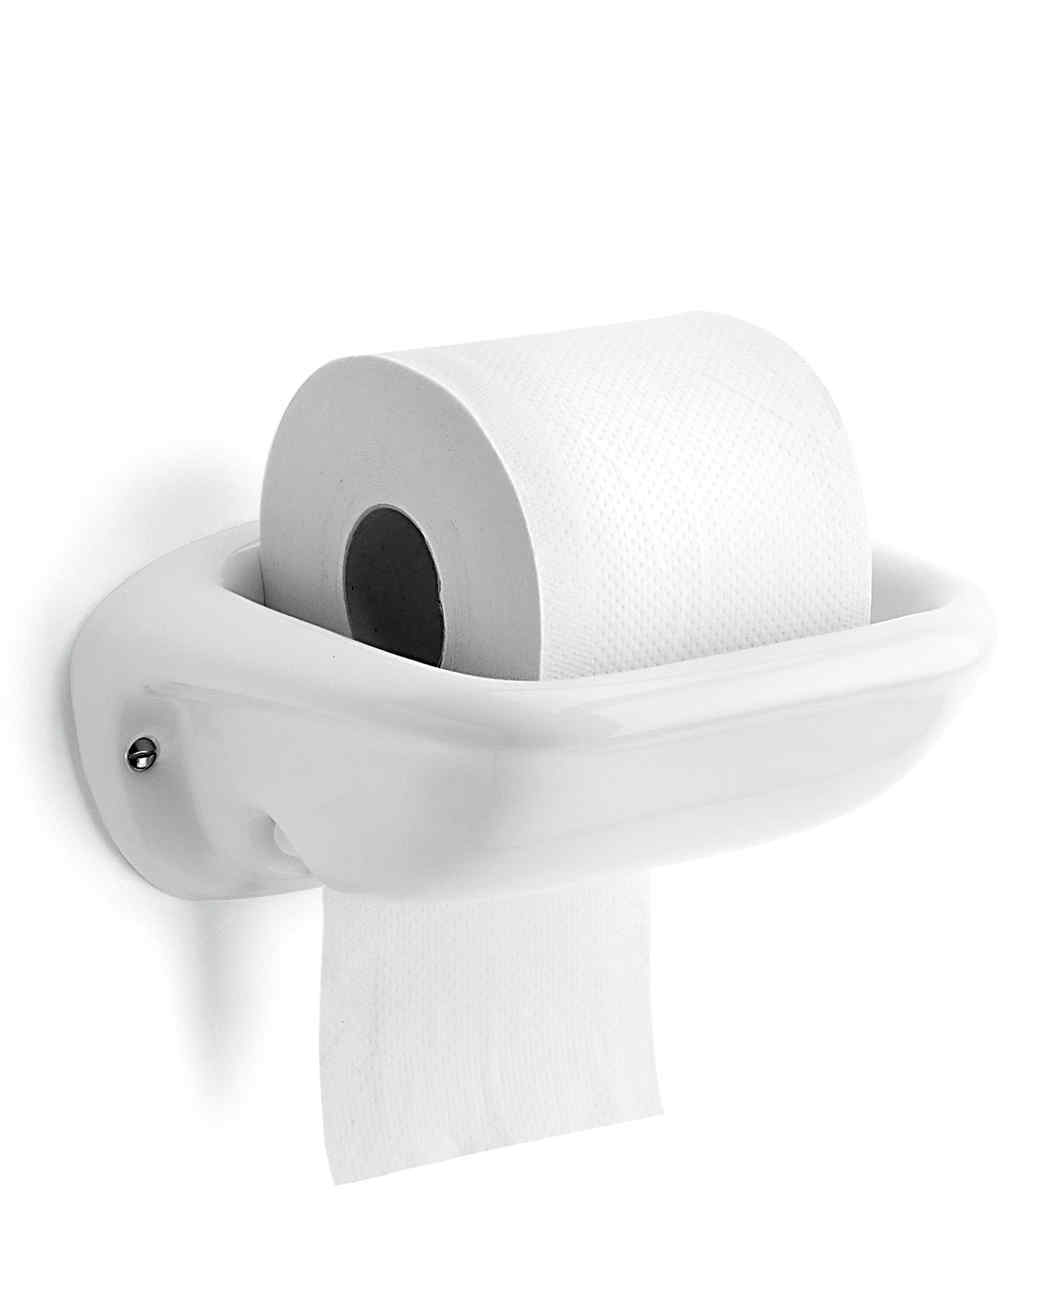 Black Ceramic Toilet Paper Holder Order In The House Design Lessons From Remodelista